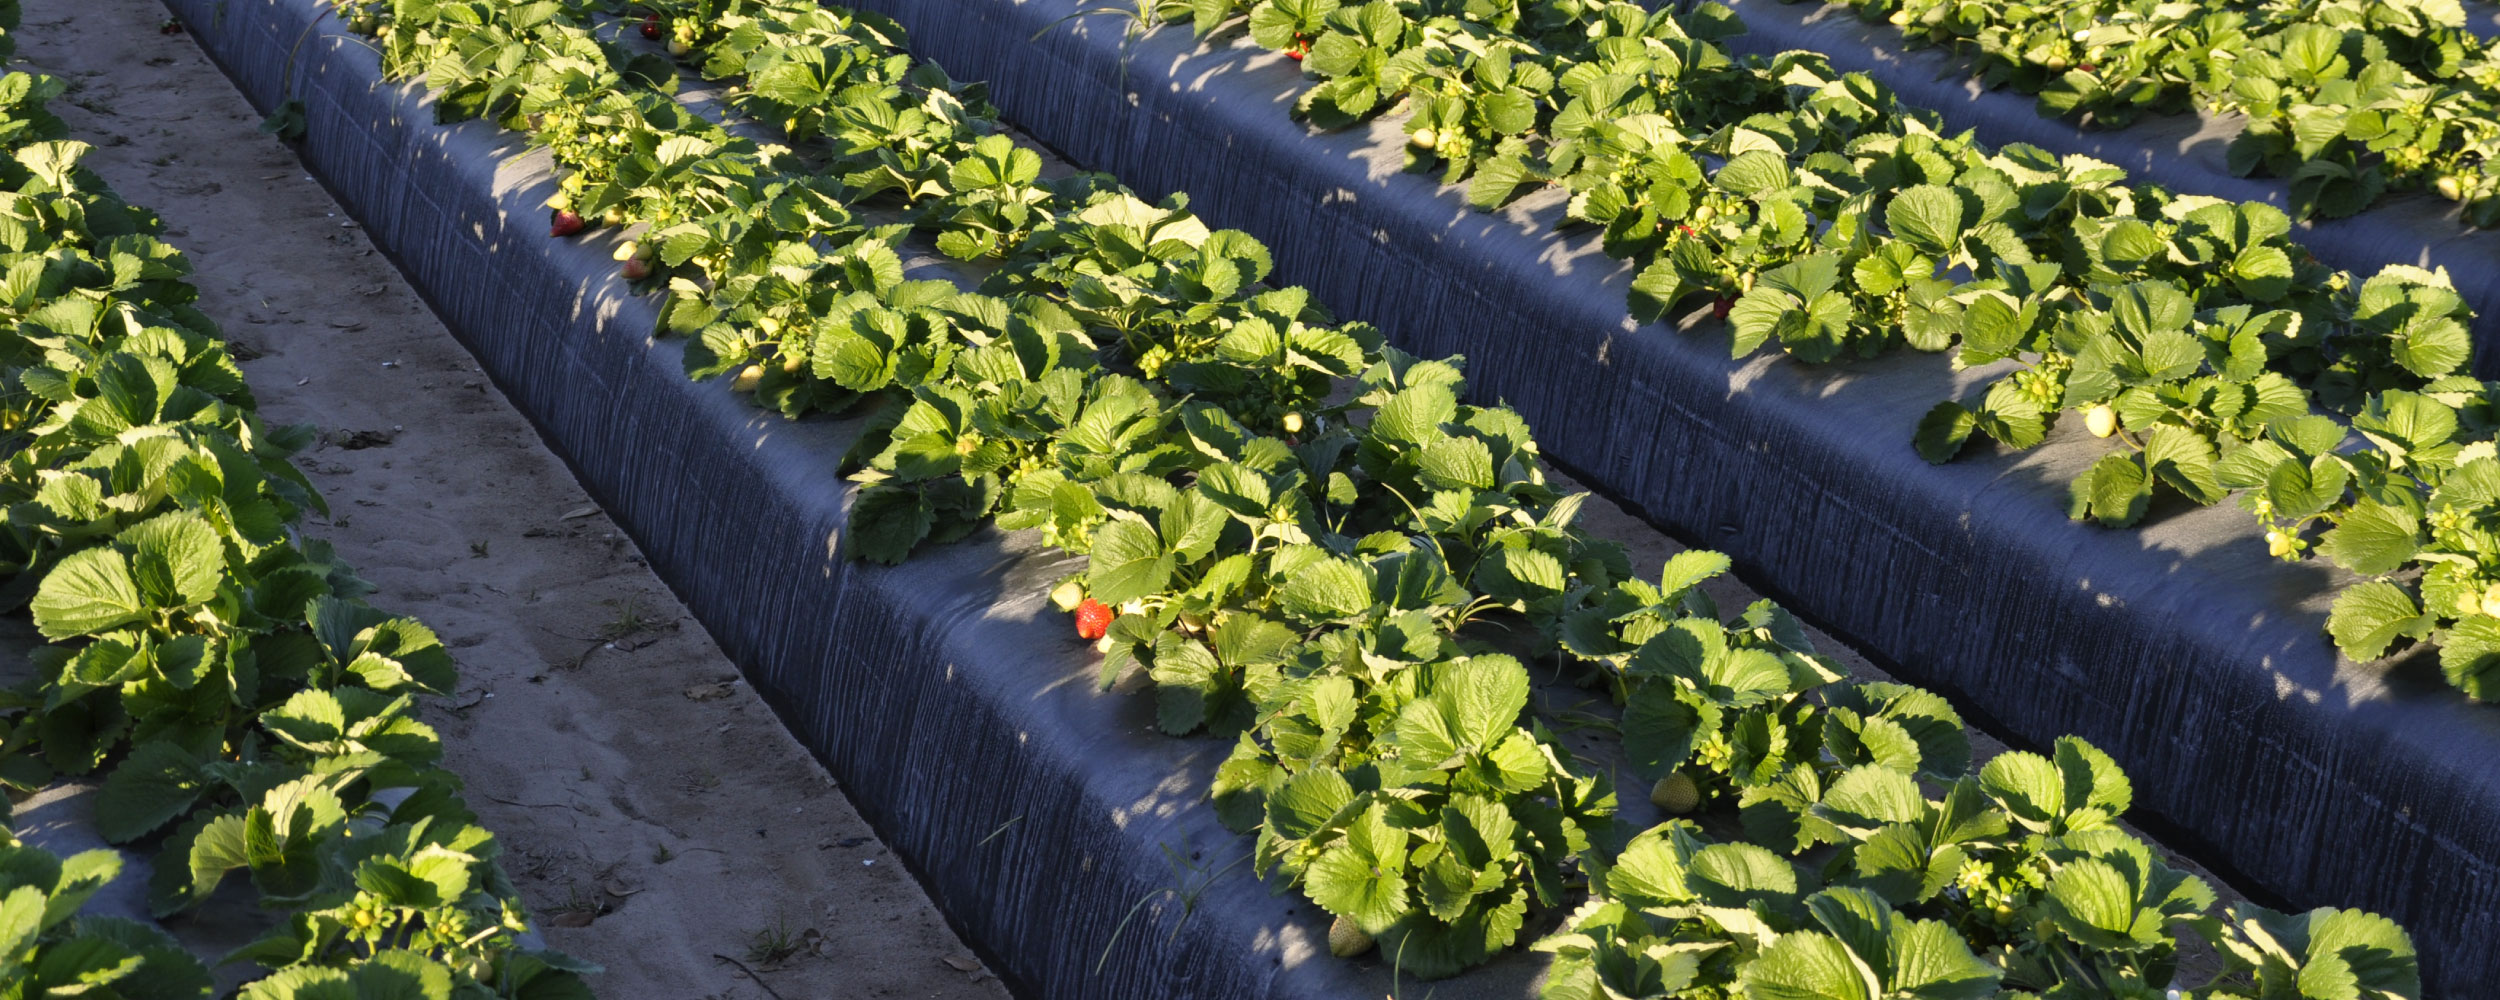 Photo of organic farm in Florida with strawberries